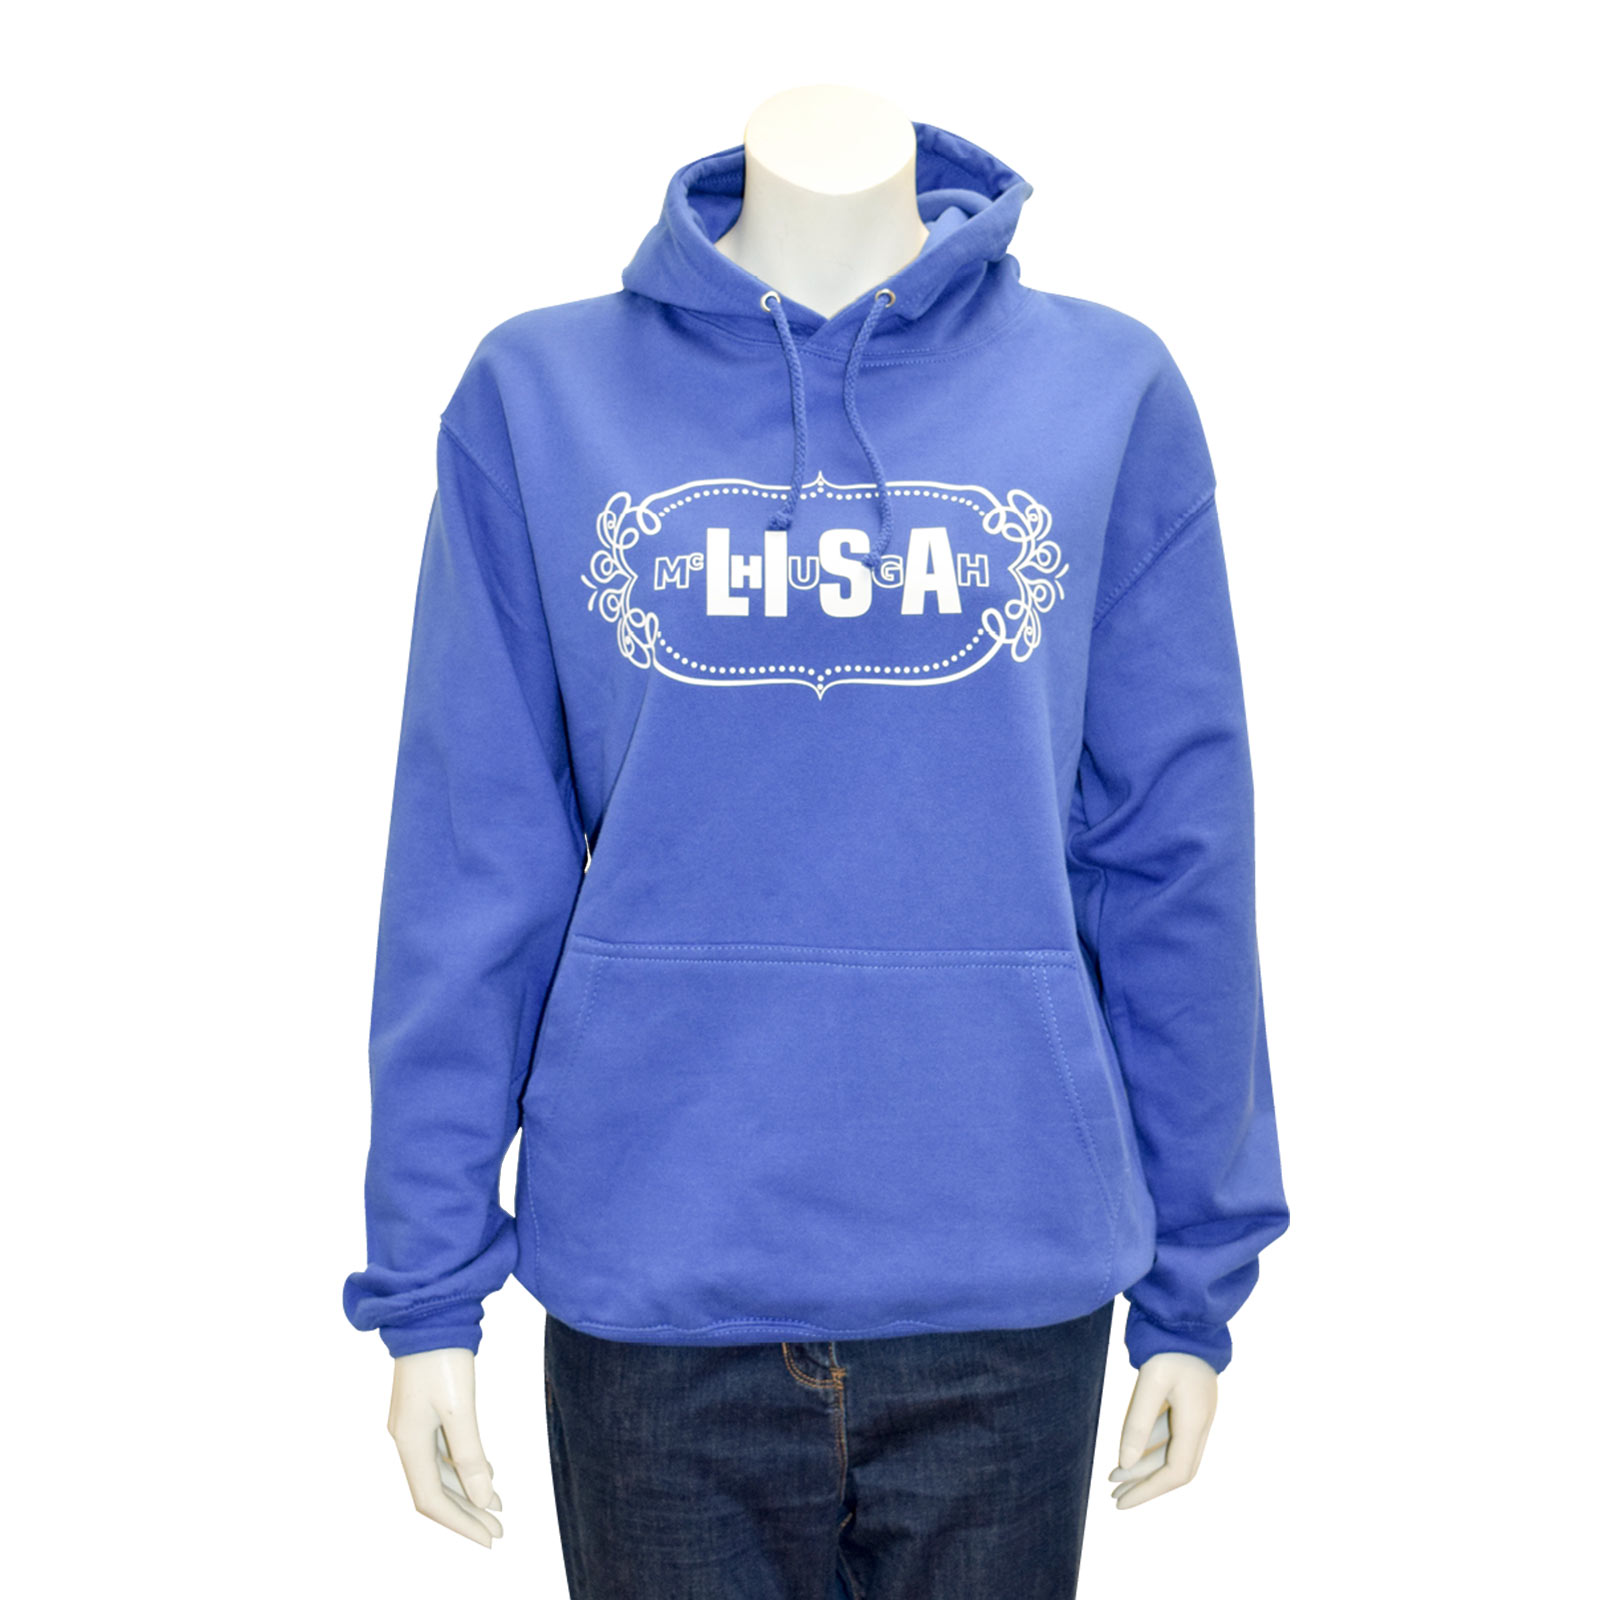 lisa mchugh adult hoodies blue